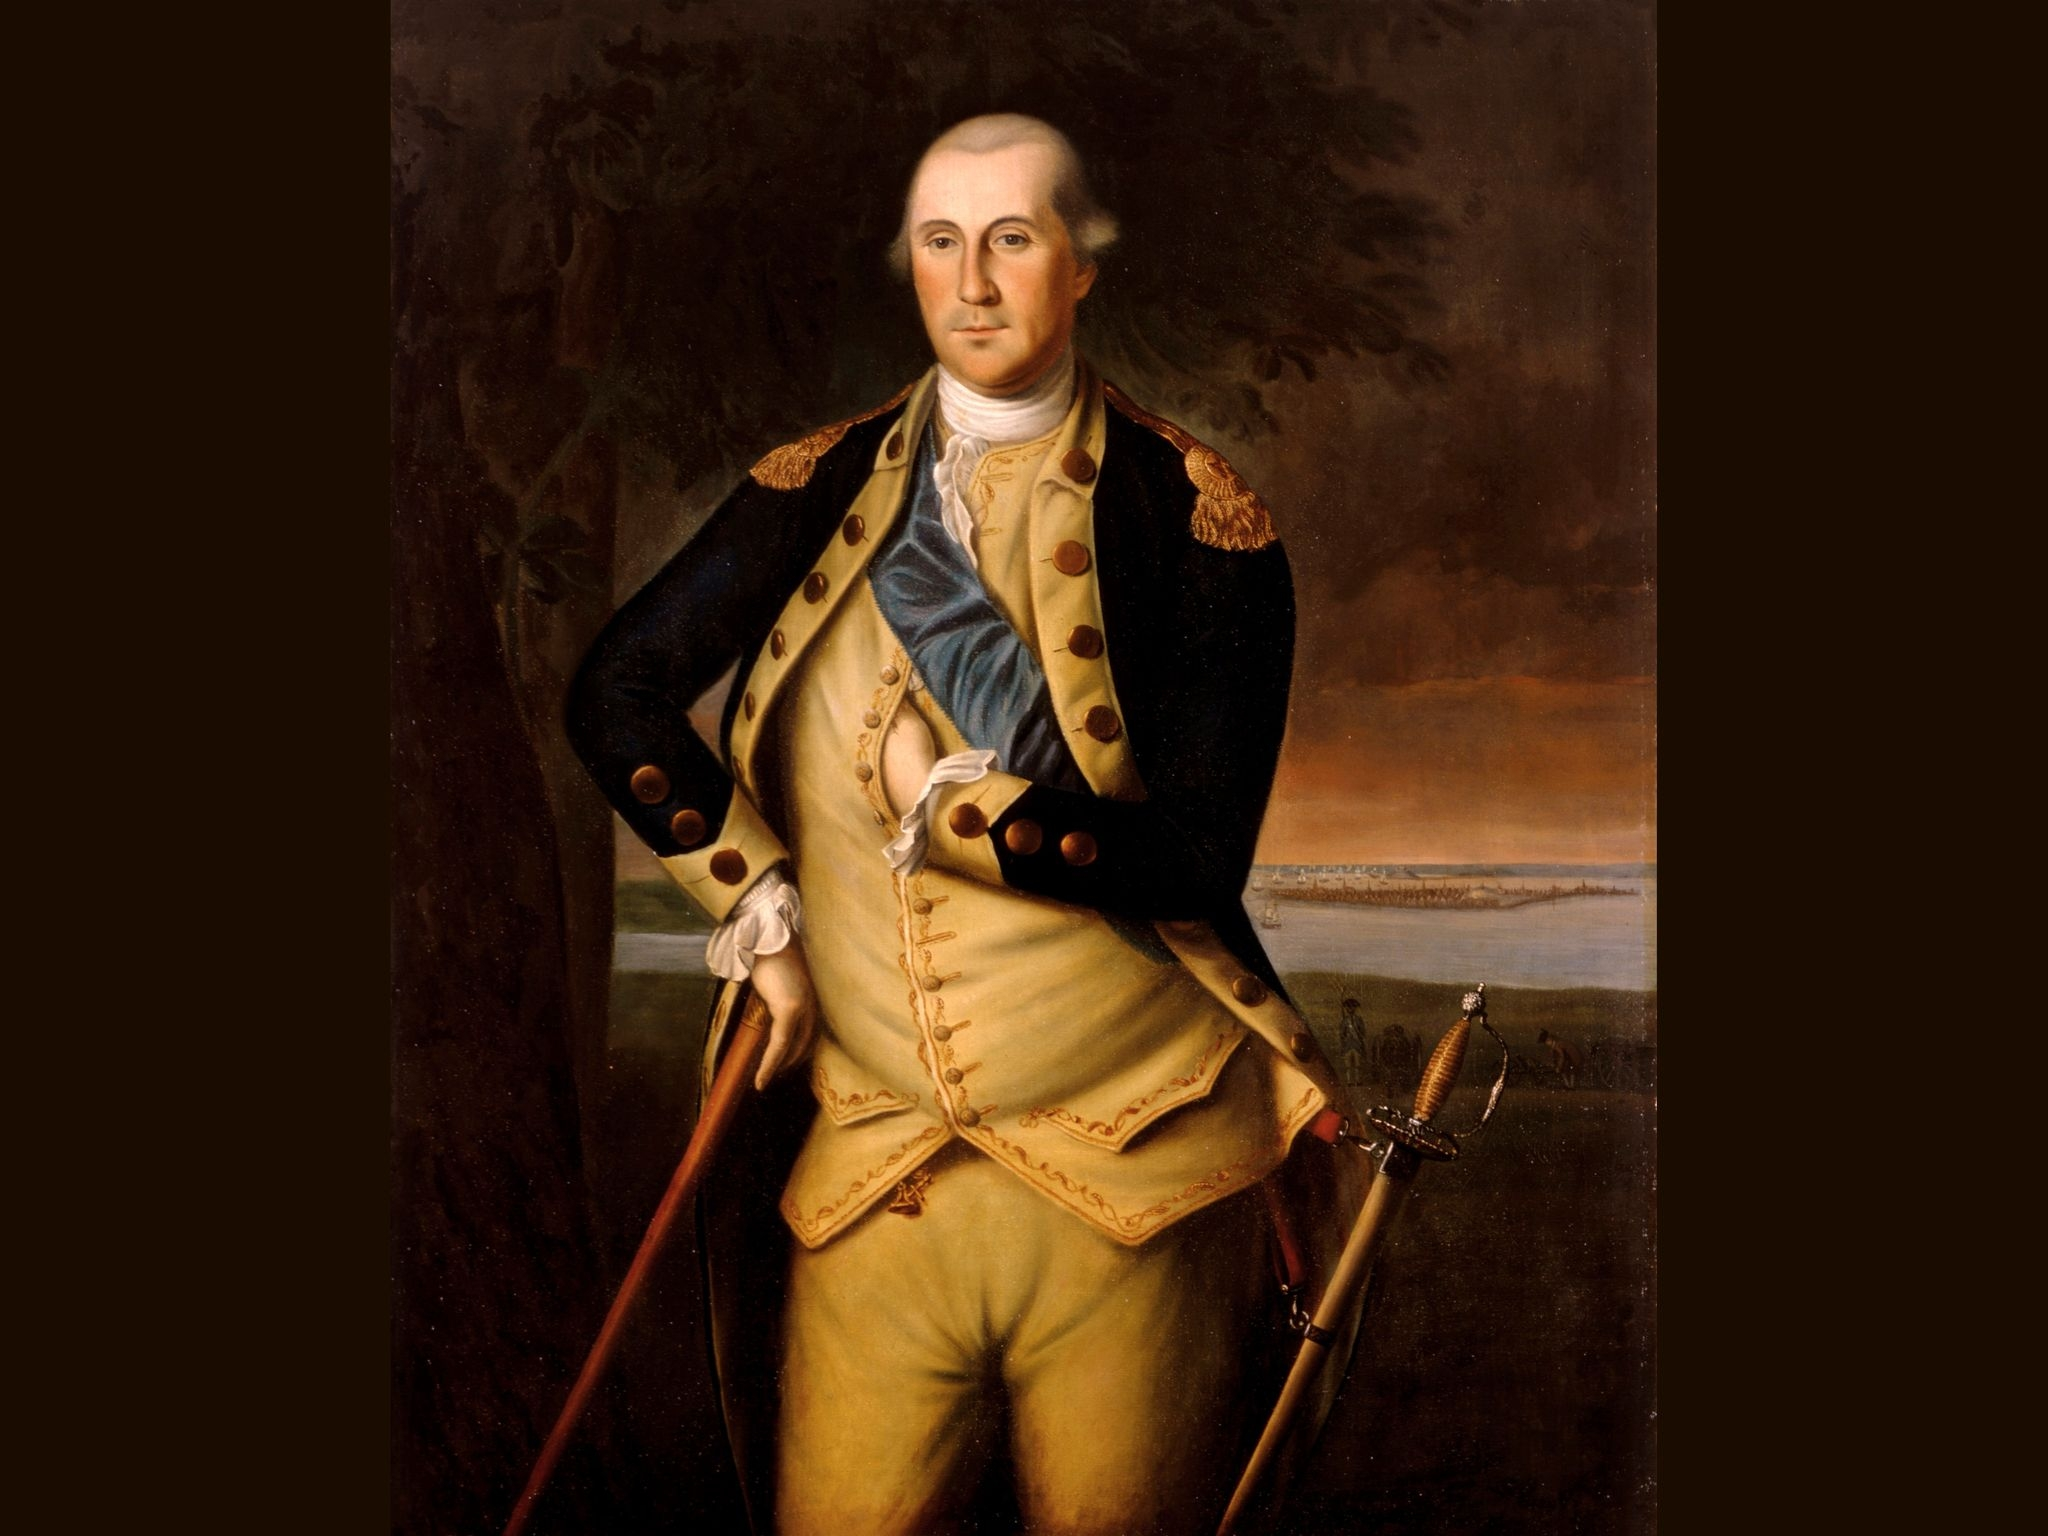 a biography of george washington 1732 1799 the commander in chief of american army during the revolu George washington  from 1759 to the outbreak of the american revolution, washington managed was elected commander in chief of the continental army.